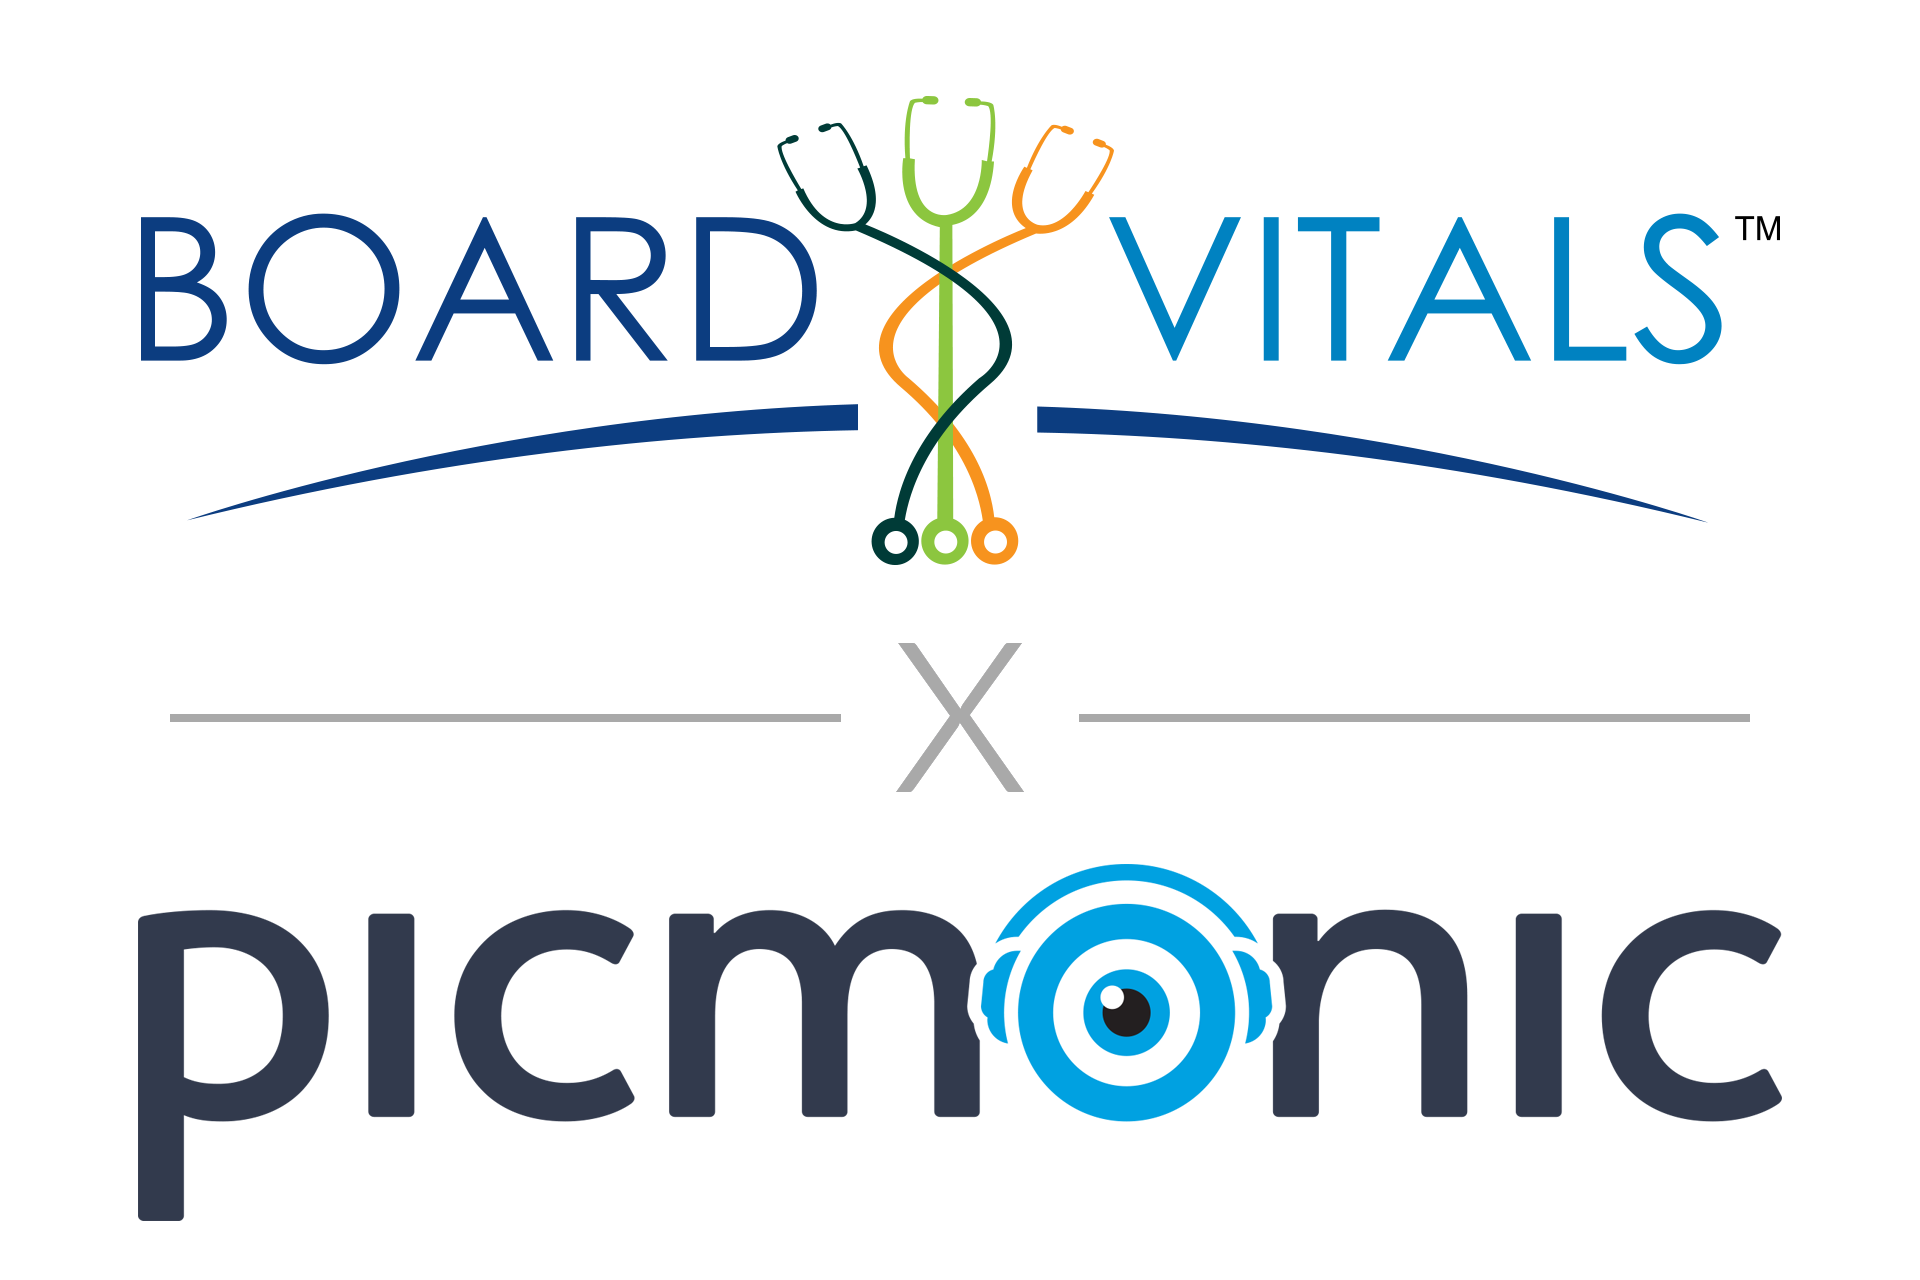 Picmonic and BoardVitals